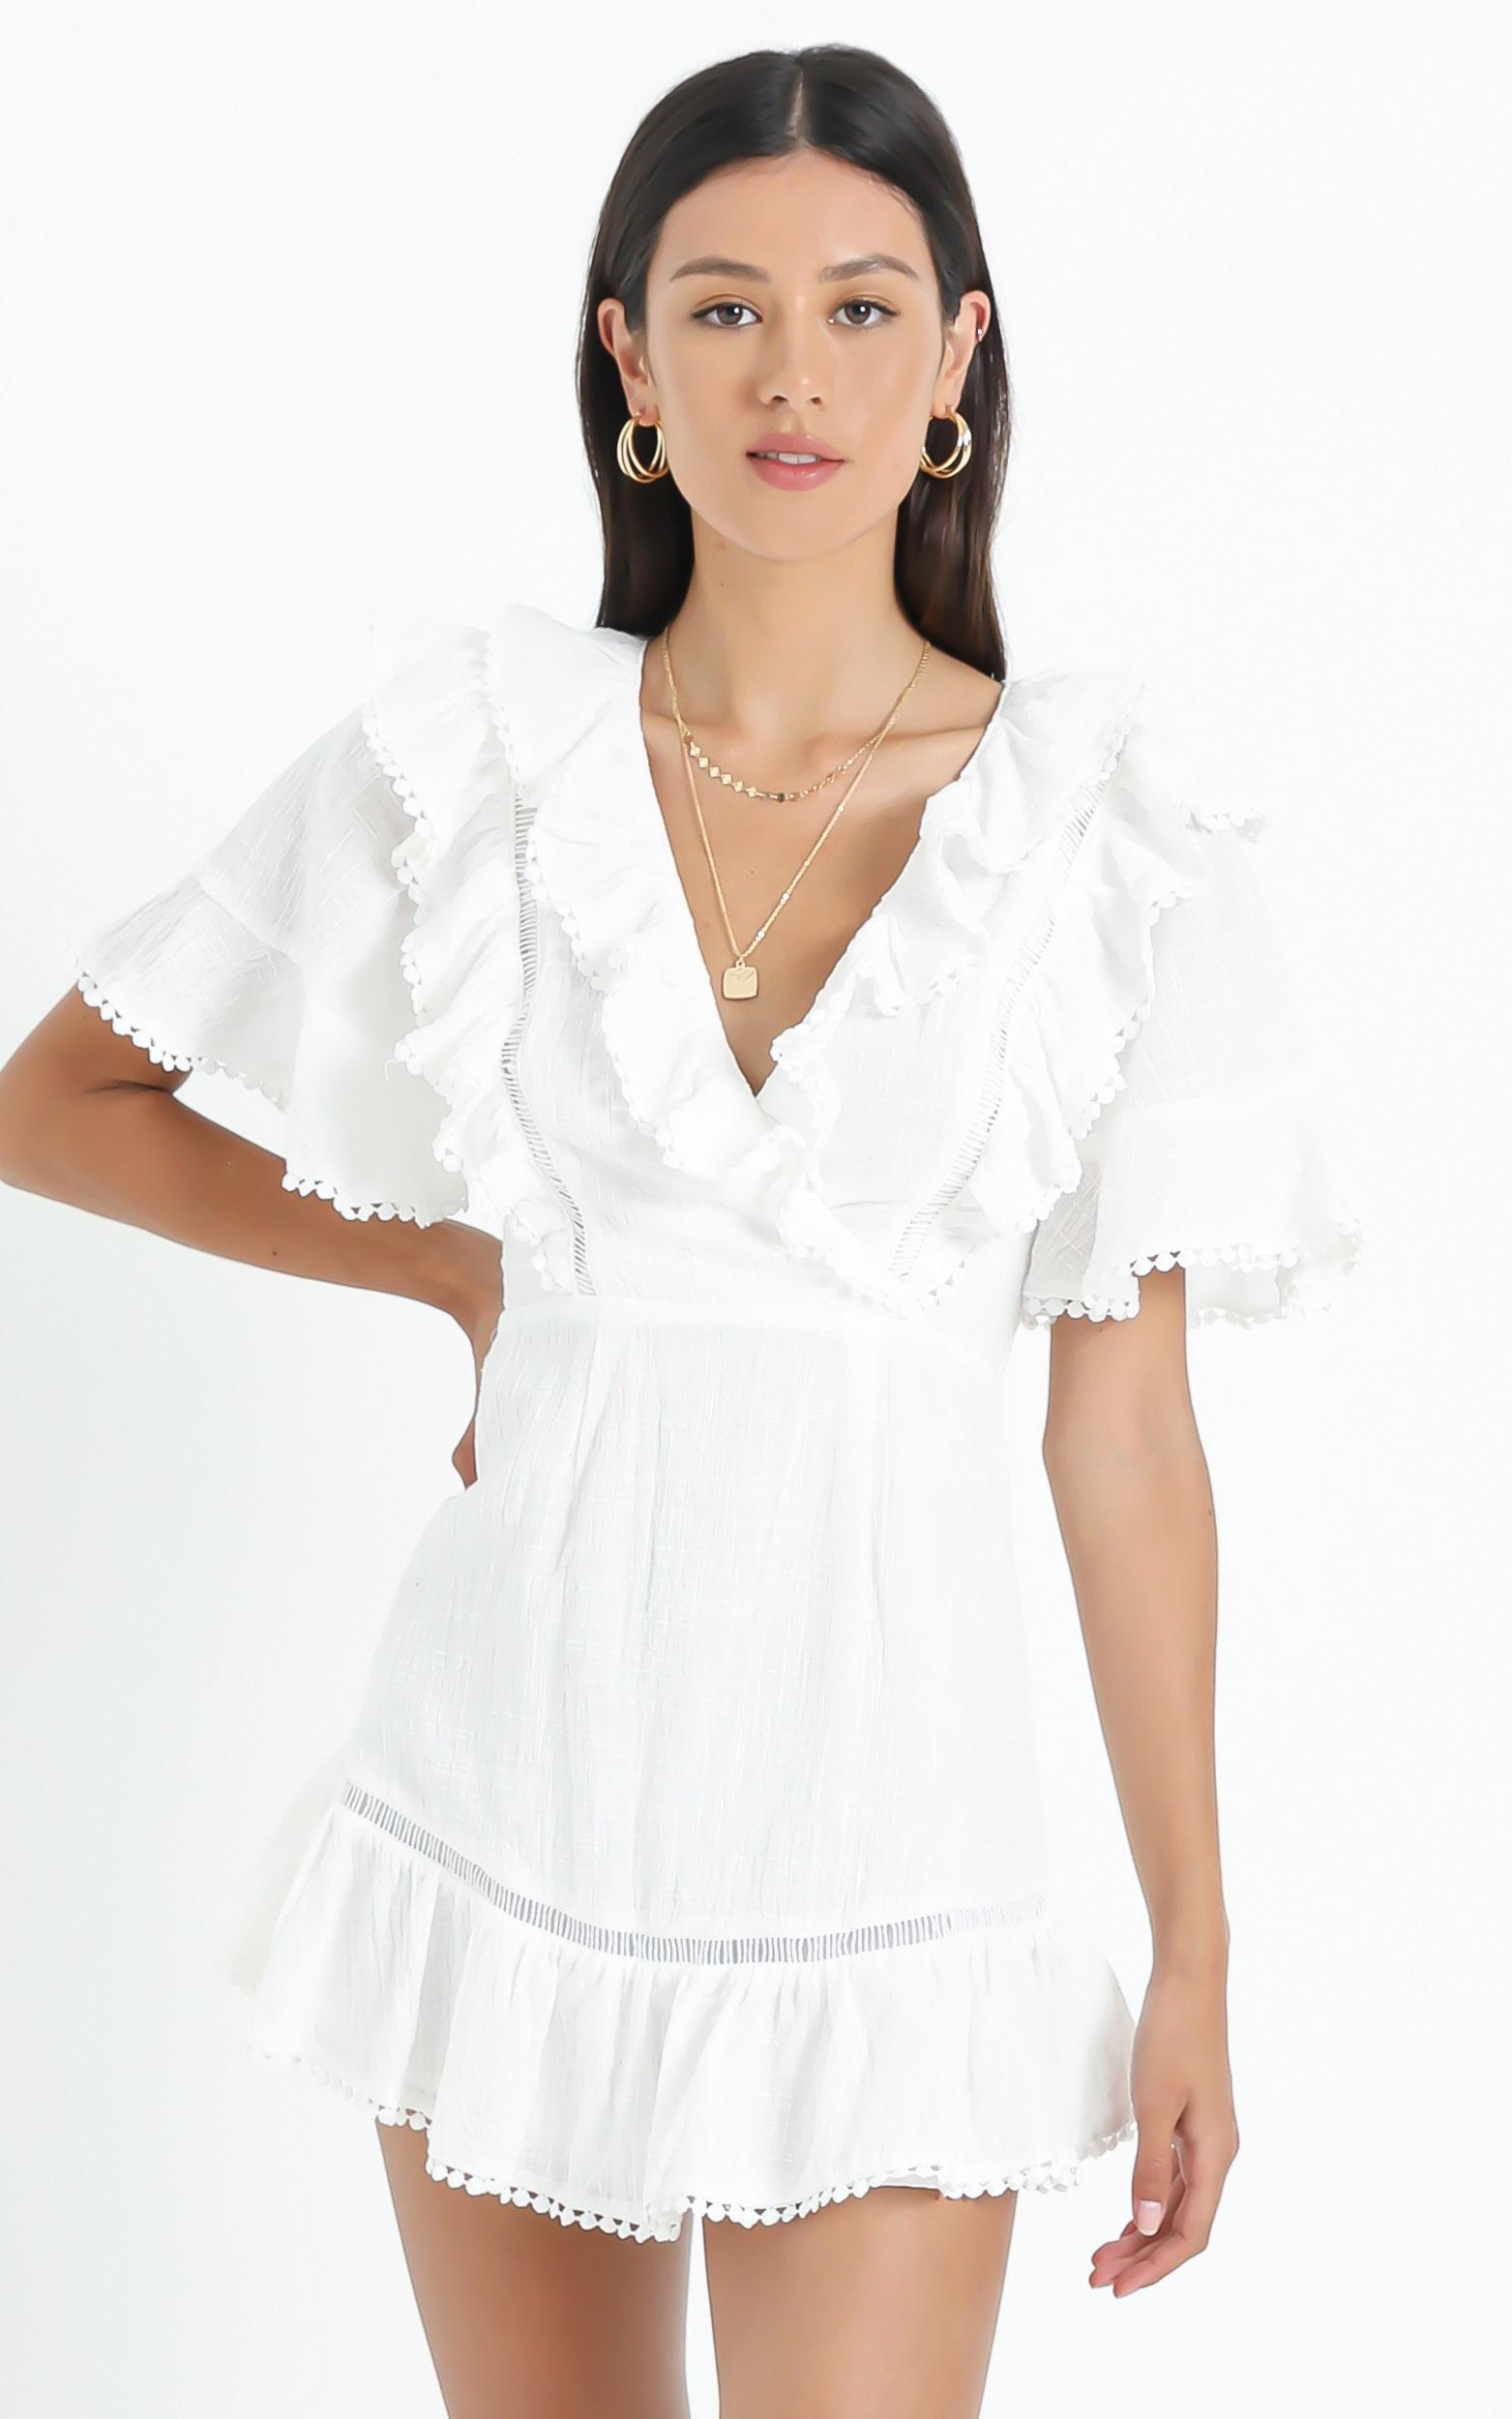 Lilii Dress in White - 6 (XS), White, hi-res image number null